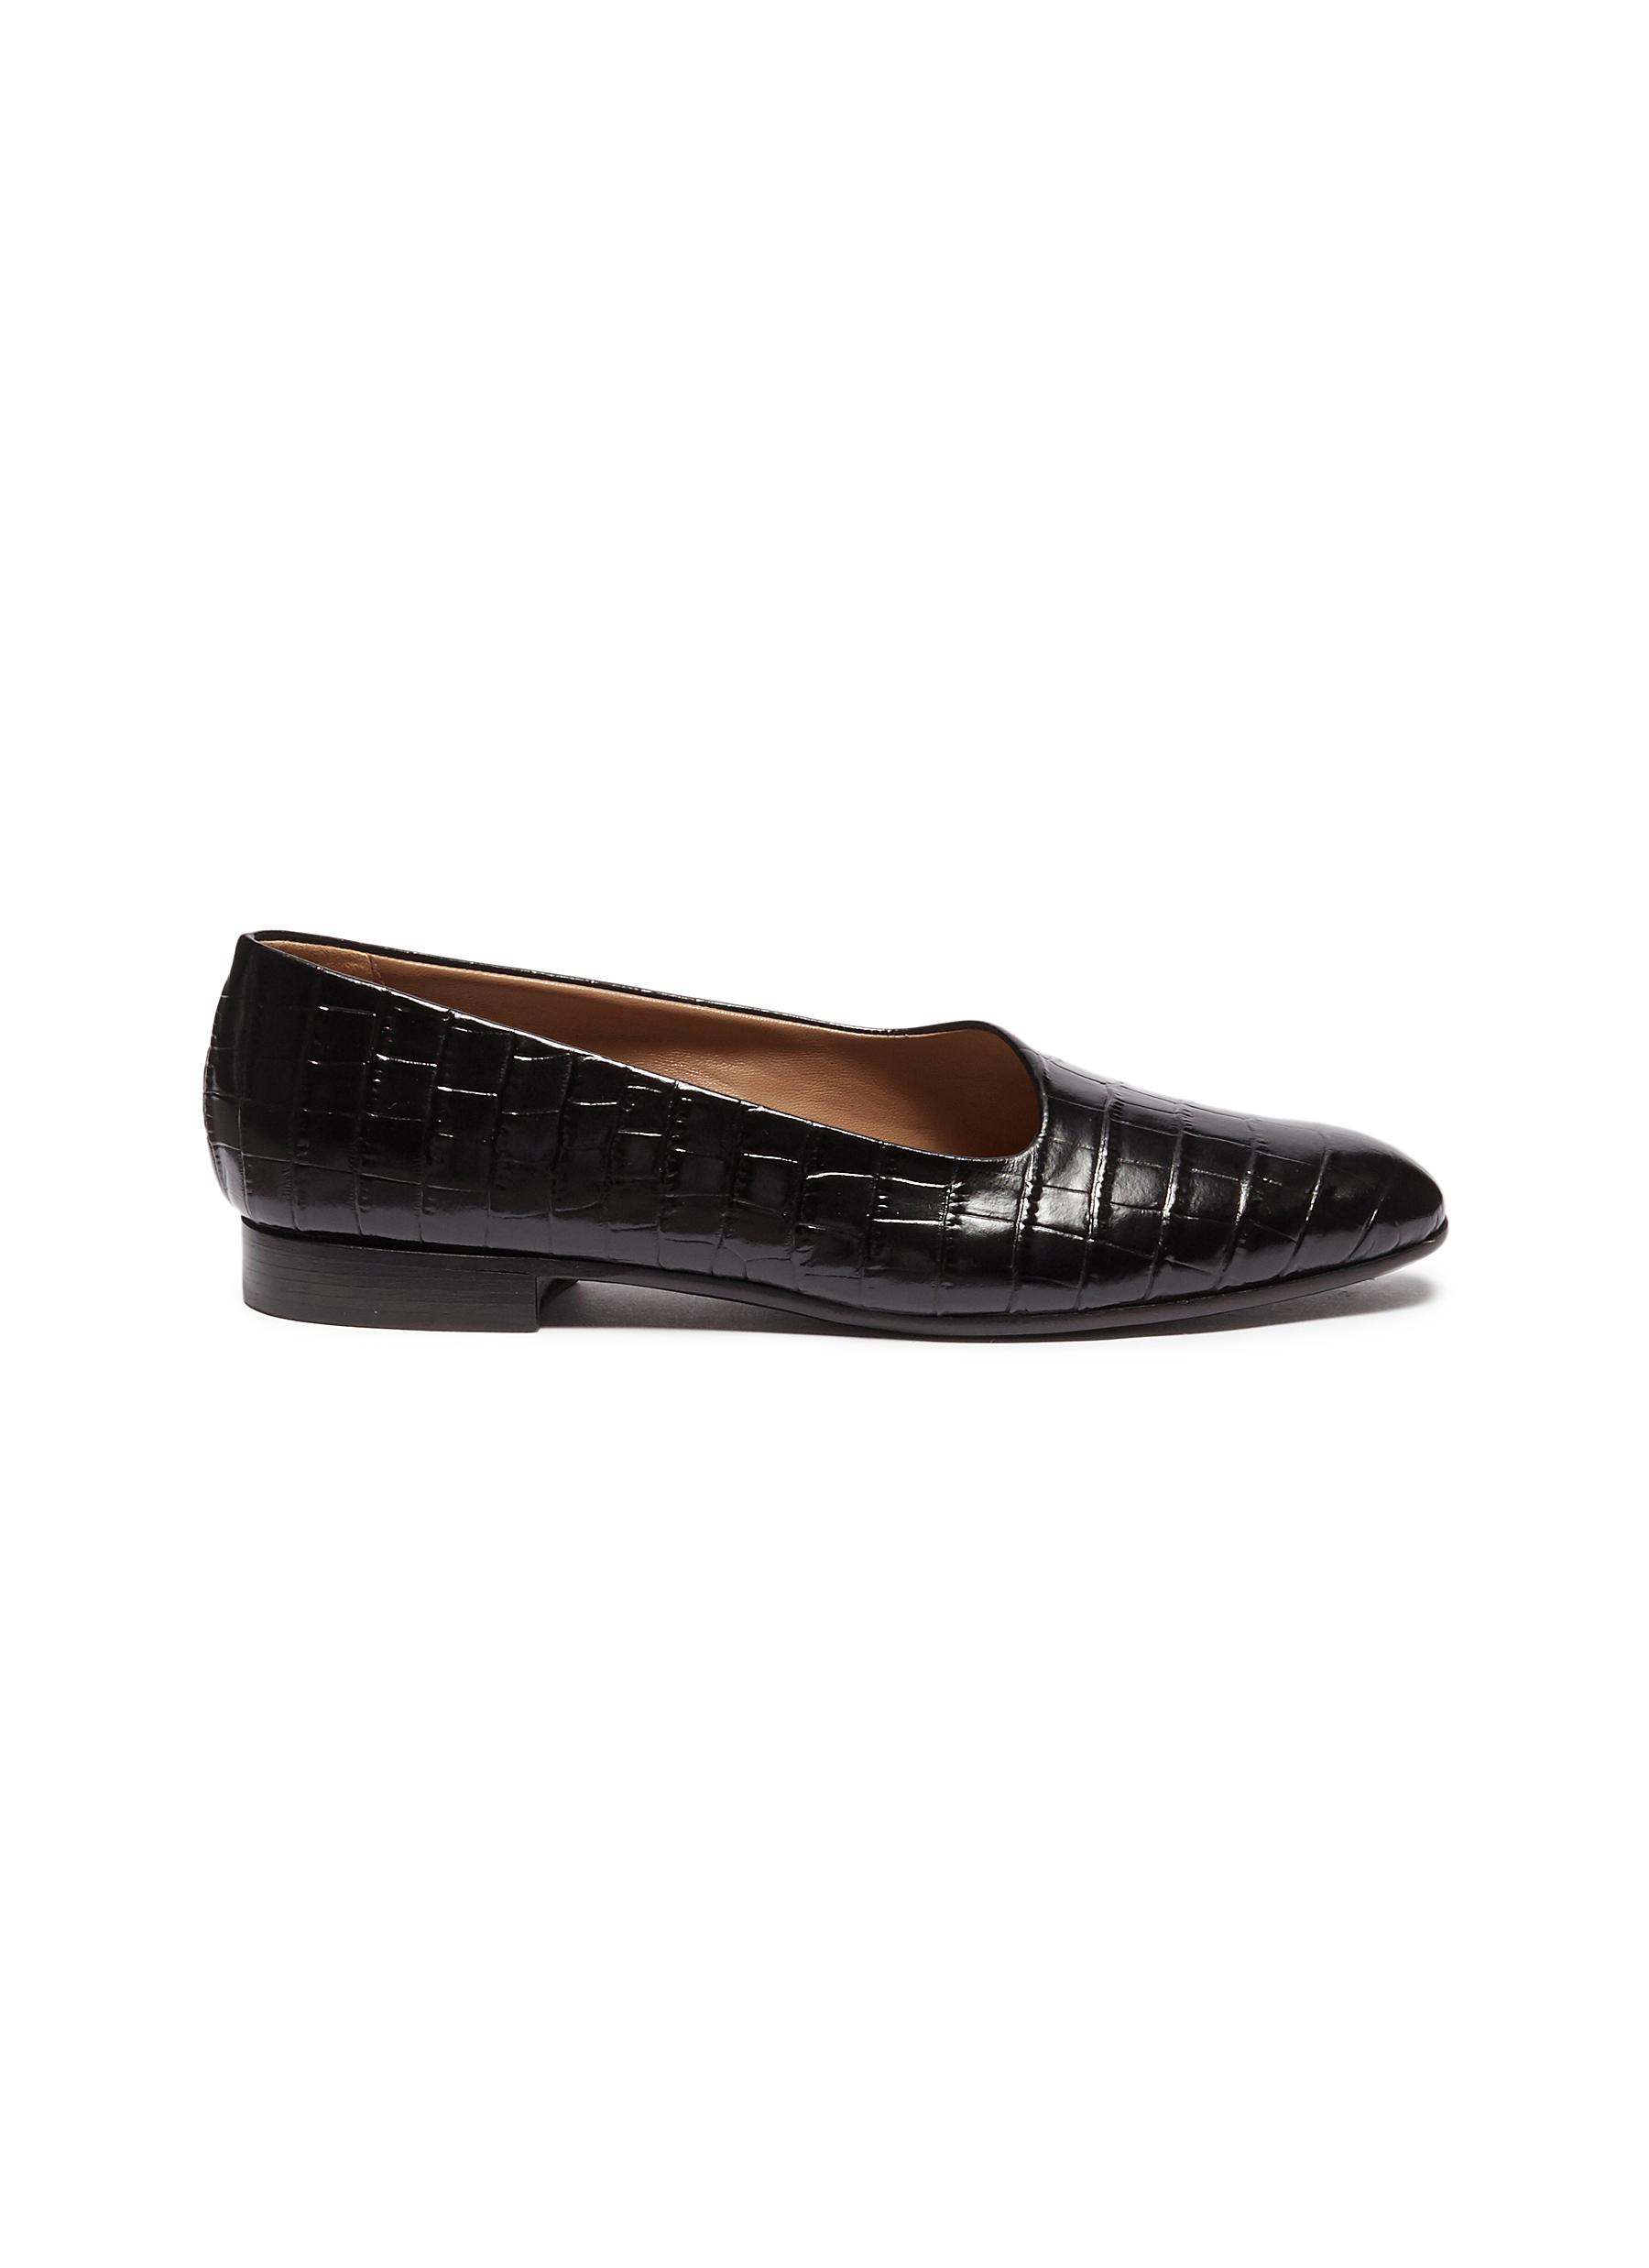 Garconne croc embossed leather flats by Alumnae